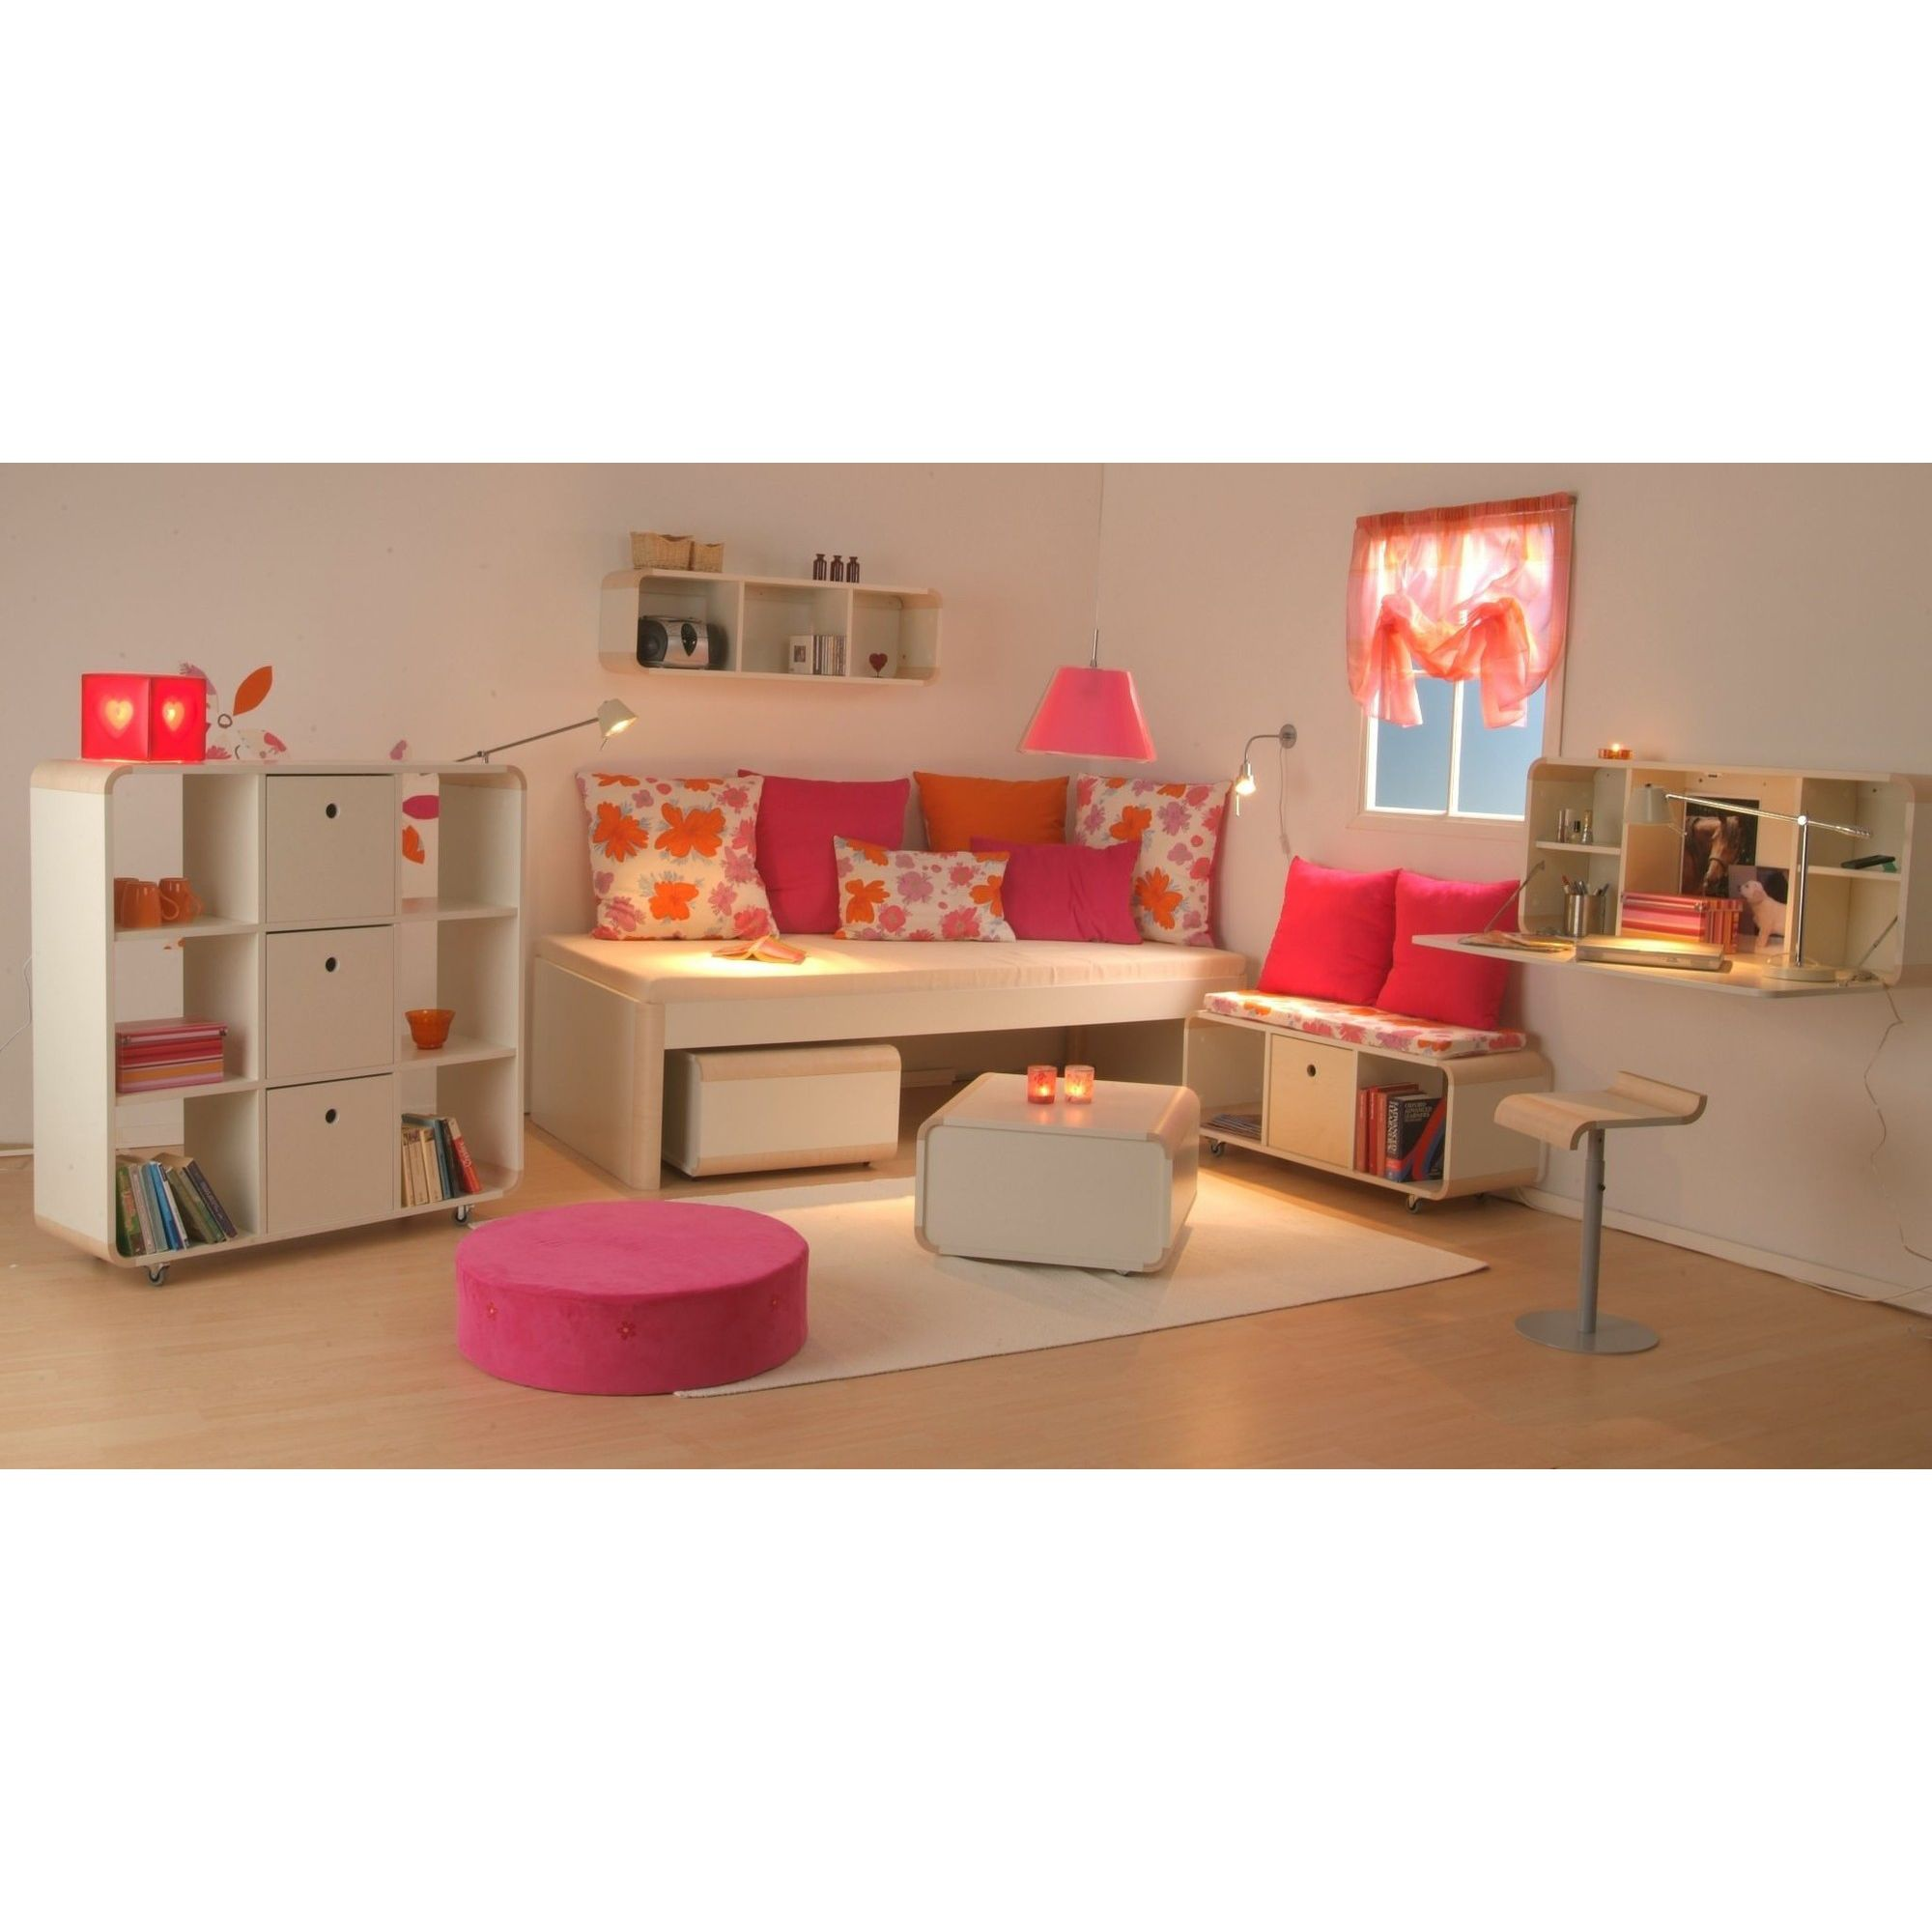 ''Junior living bookcase ''''3'''', white'' at Tesco Direct